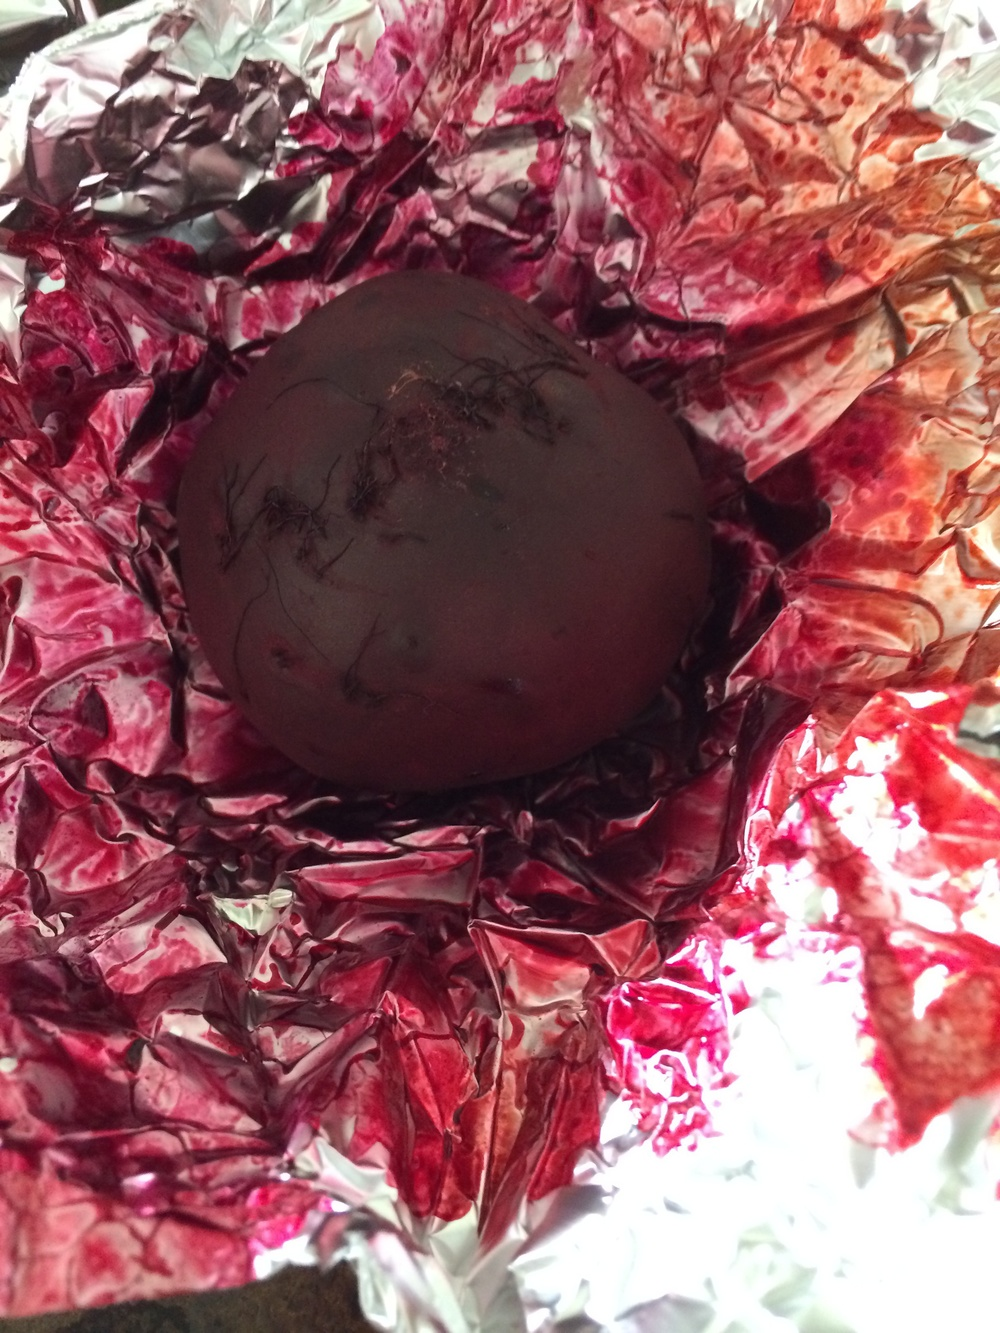 Lovely color in our roasted beet.